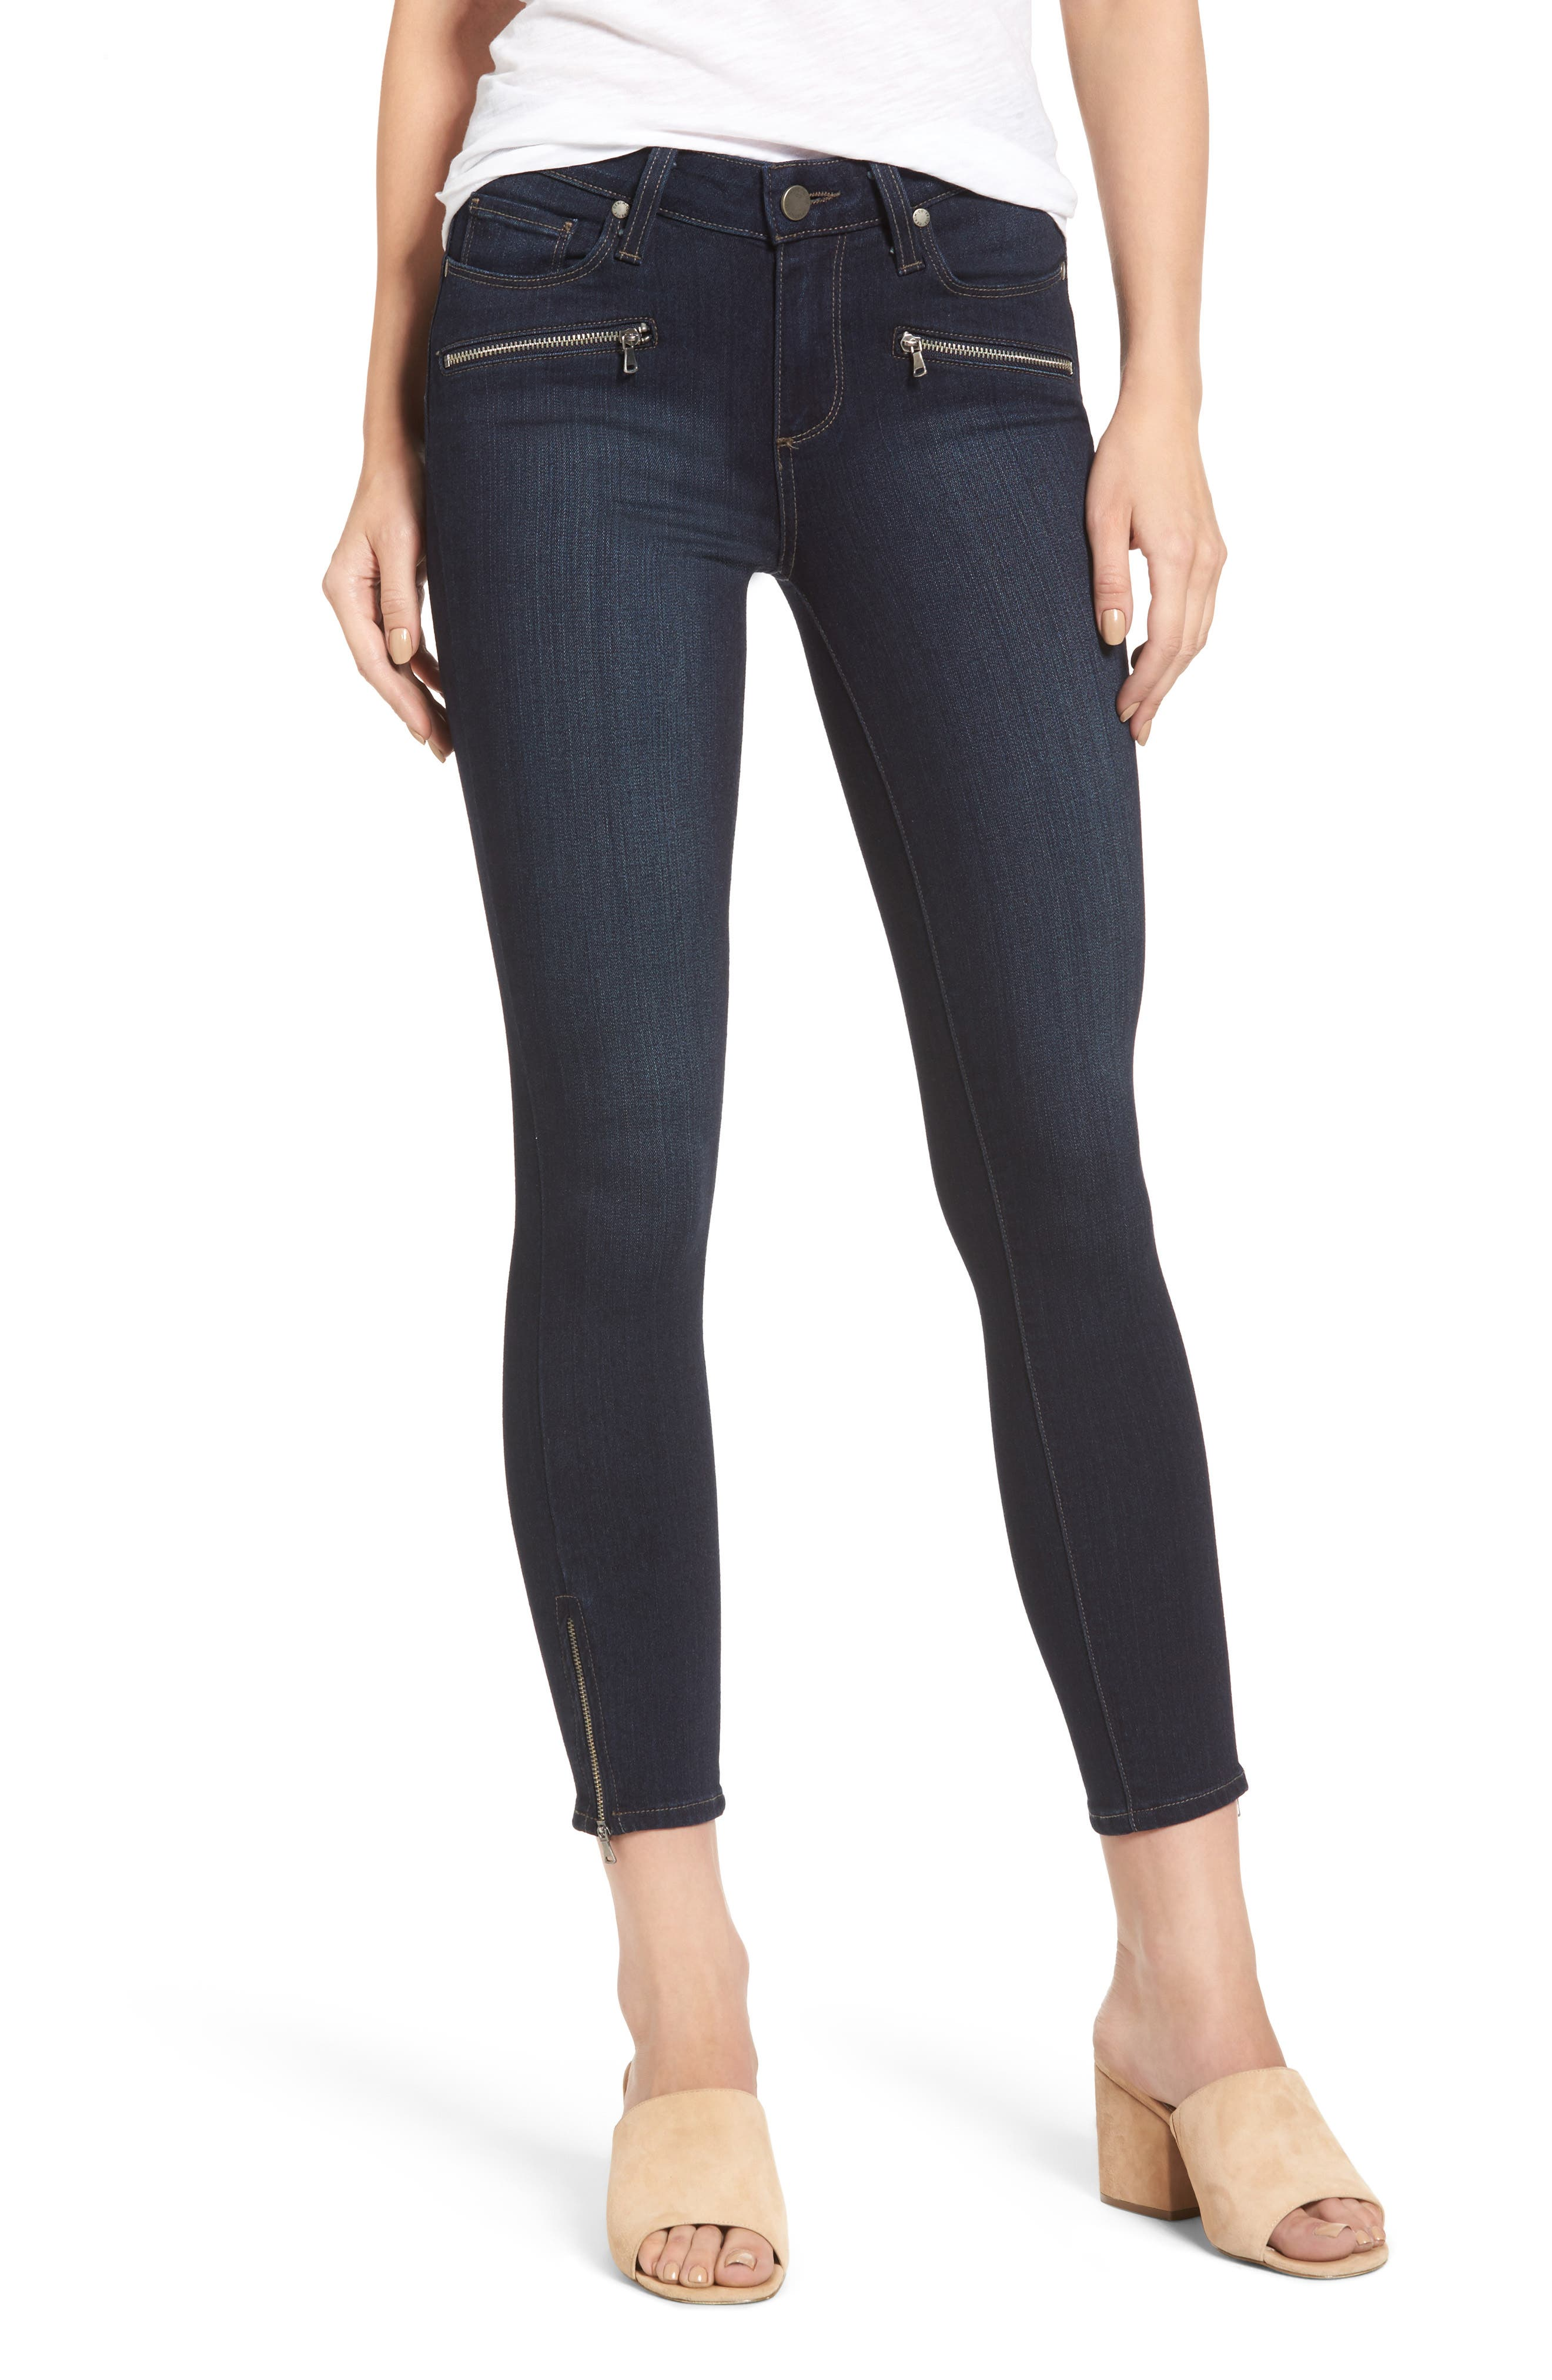 Transcend - Jane Zip Crop Skinny Jeans,                             Main thumbnail 1, color,                             Elsie No Whiskers